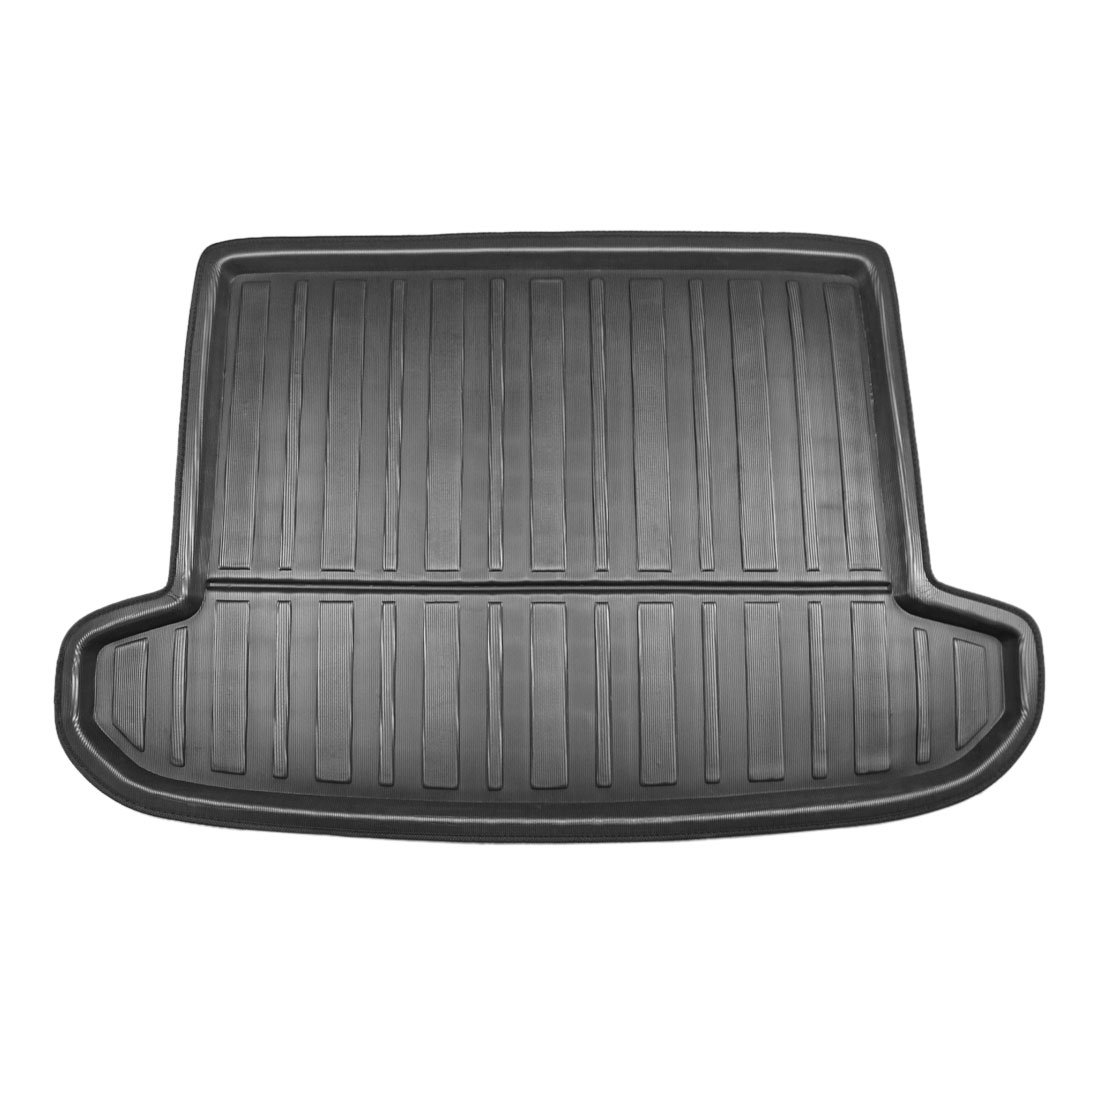 X AUTOHAUX Black Rear Trunk Boot Liner Cargo Mat Floor Tray for Hyundai Tucson 16-18